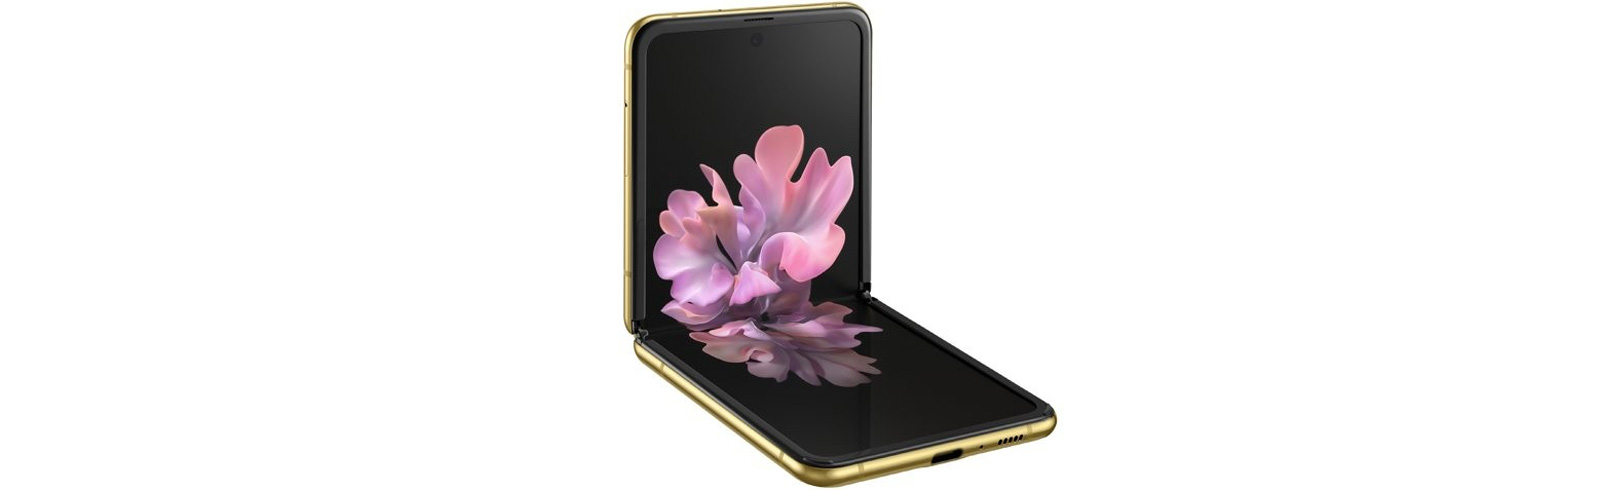 Samsung will introduce the Galaxy Fold 2 and the Galaxy Z Flip 5G in August with the Galaxy Note 20 series